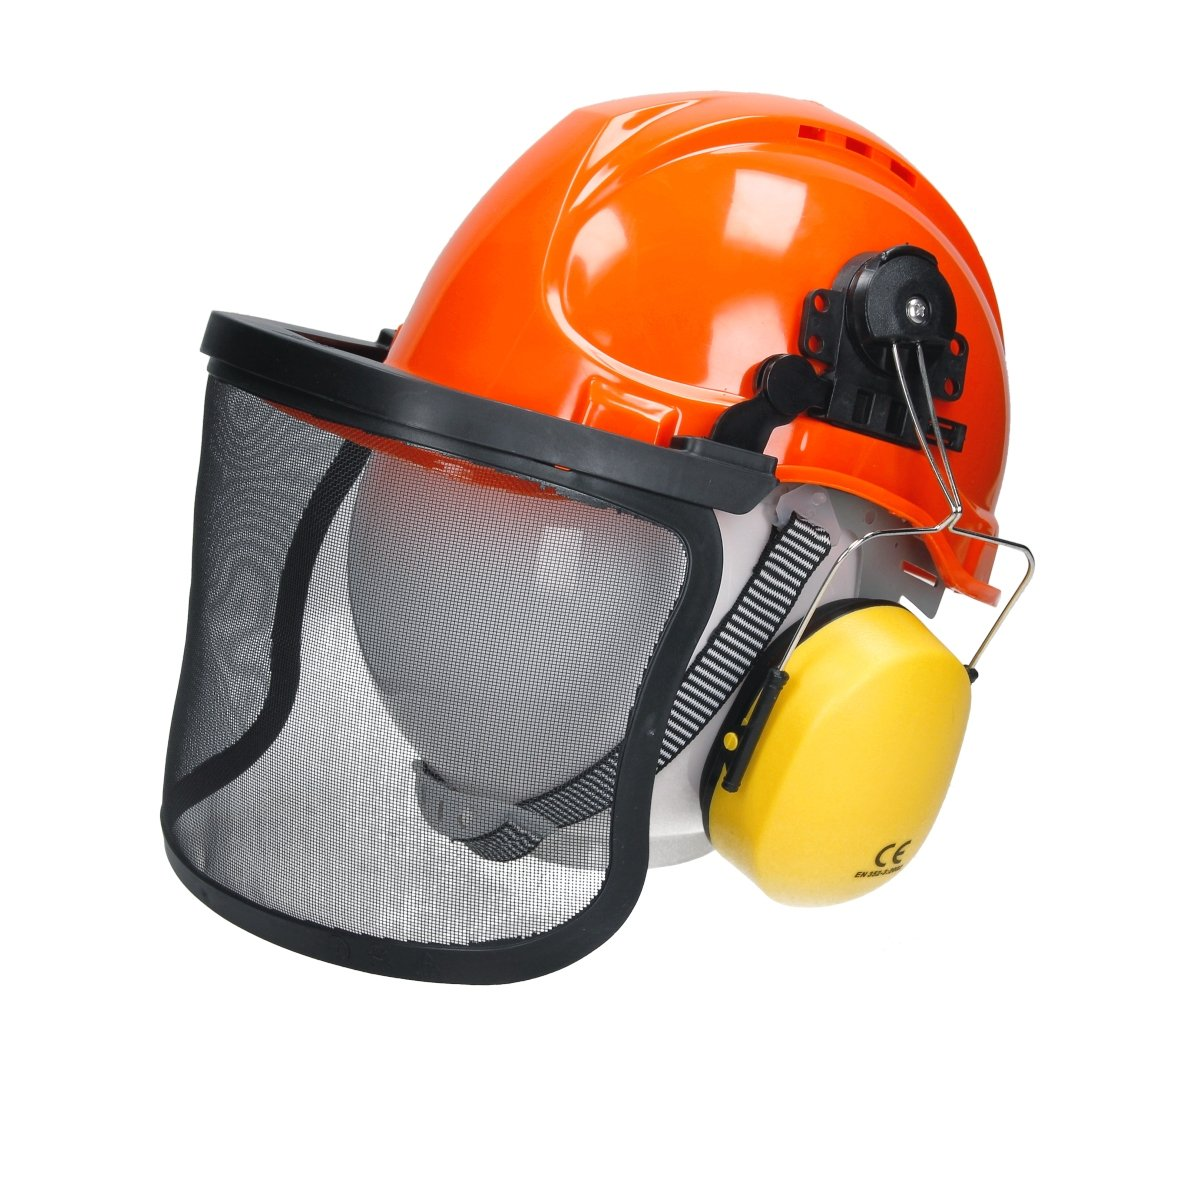 ECD-Germany Casque de sécurité Visière grillagée Casque Anti Bruit Protection faciale auditive ECD Germany